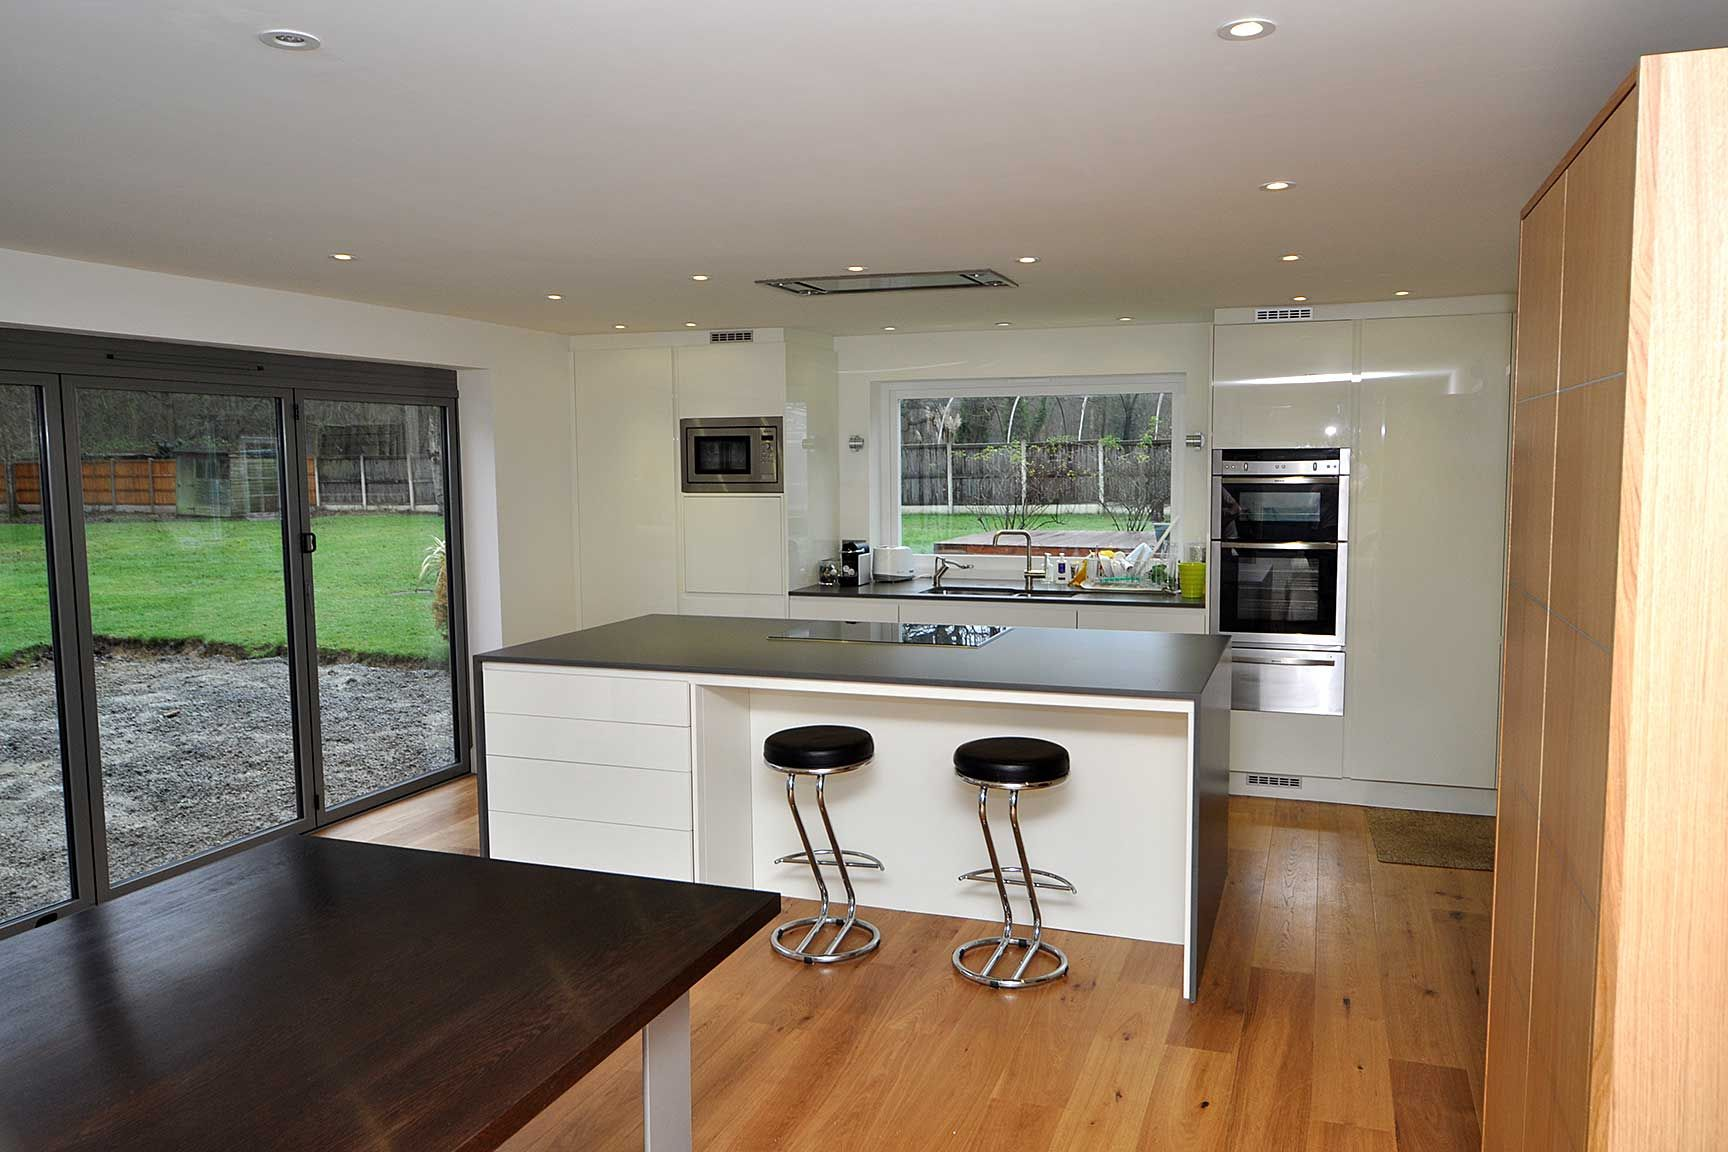 Interior design ideas for kitchen diner with island and wooden floor